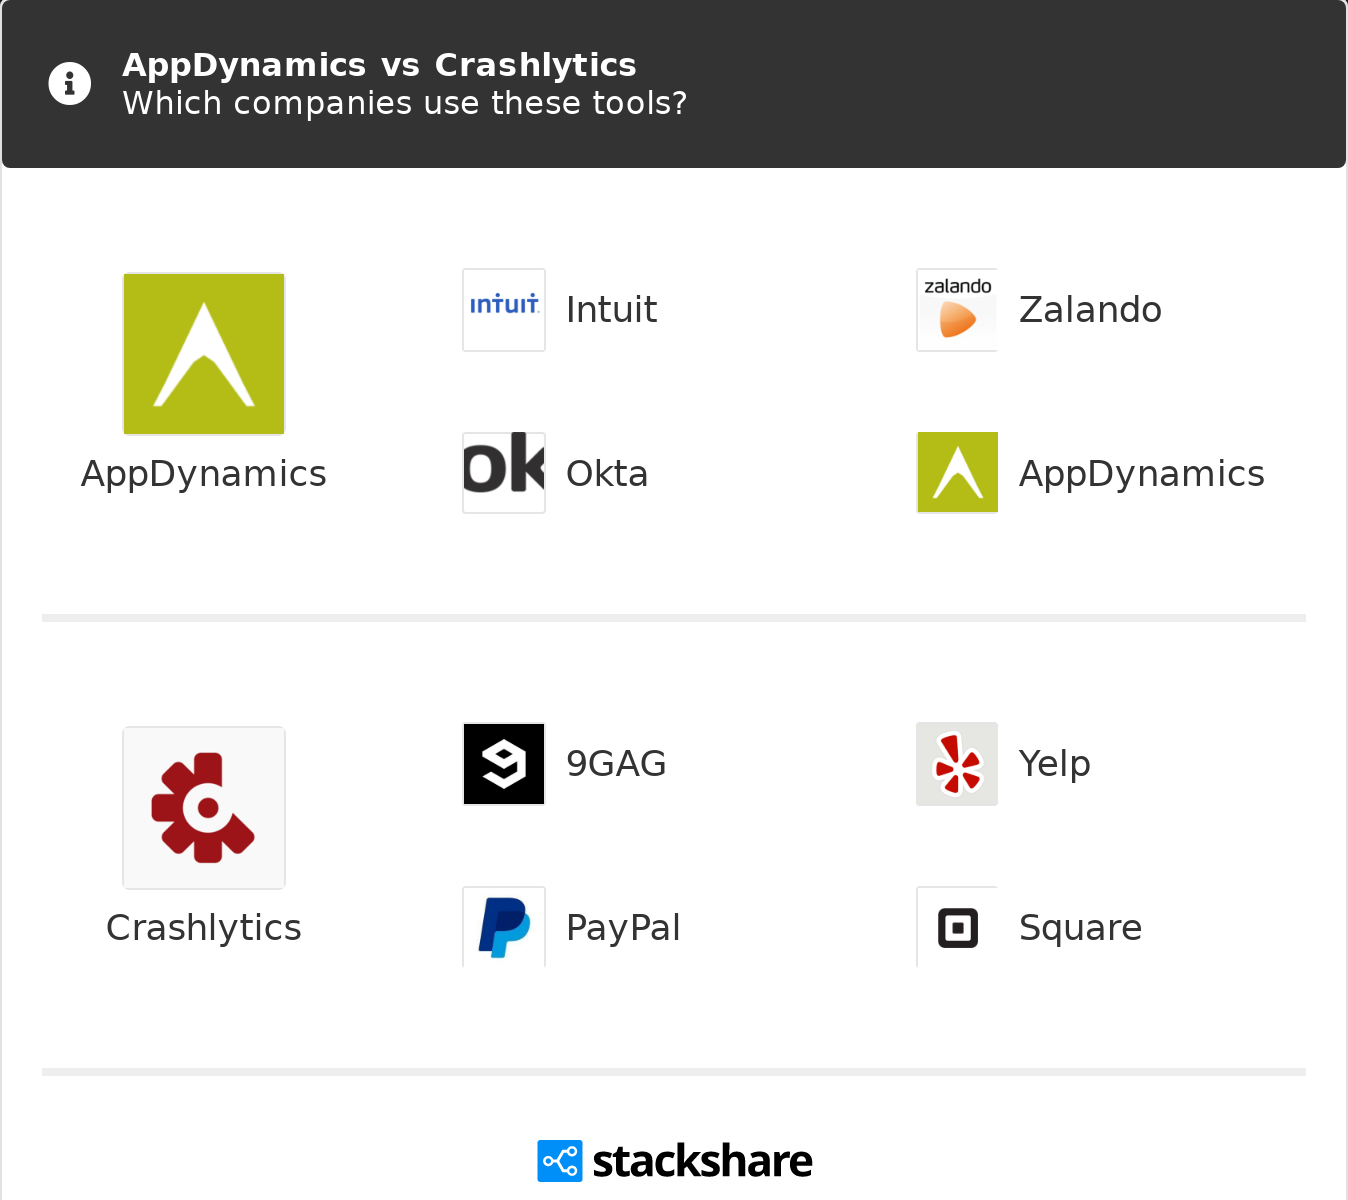 AppDynamics vs Crashlytics | What are the differences?